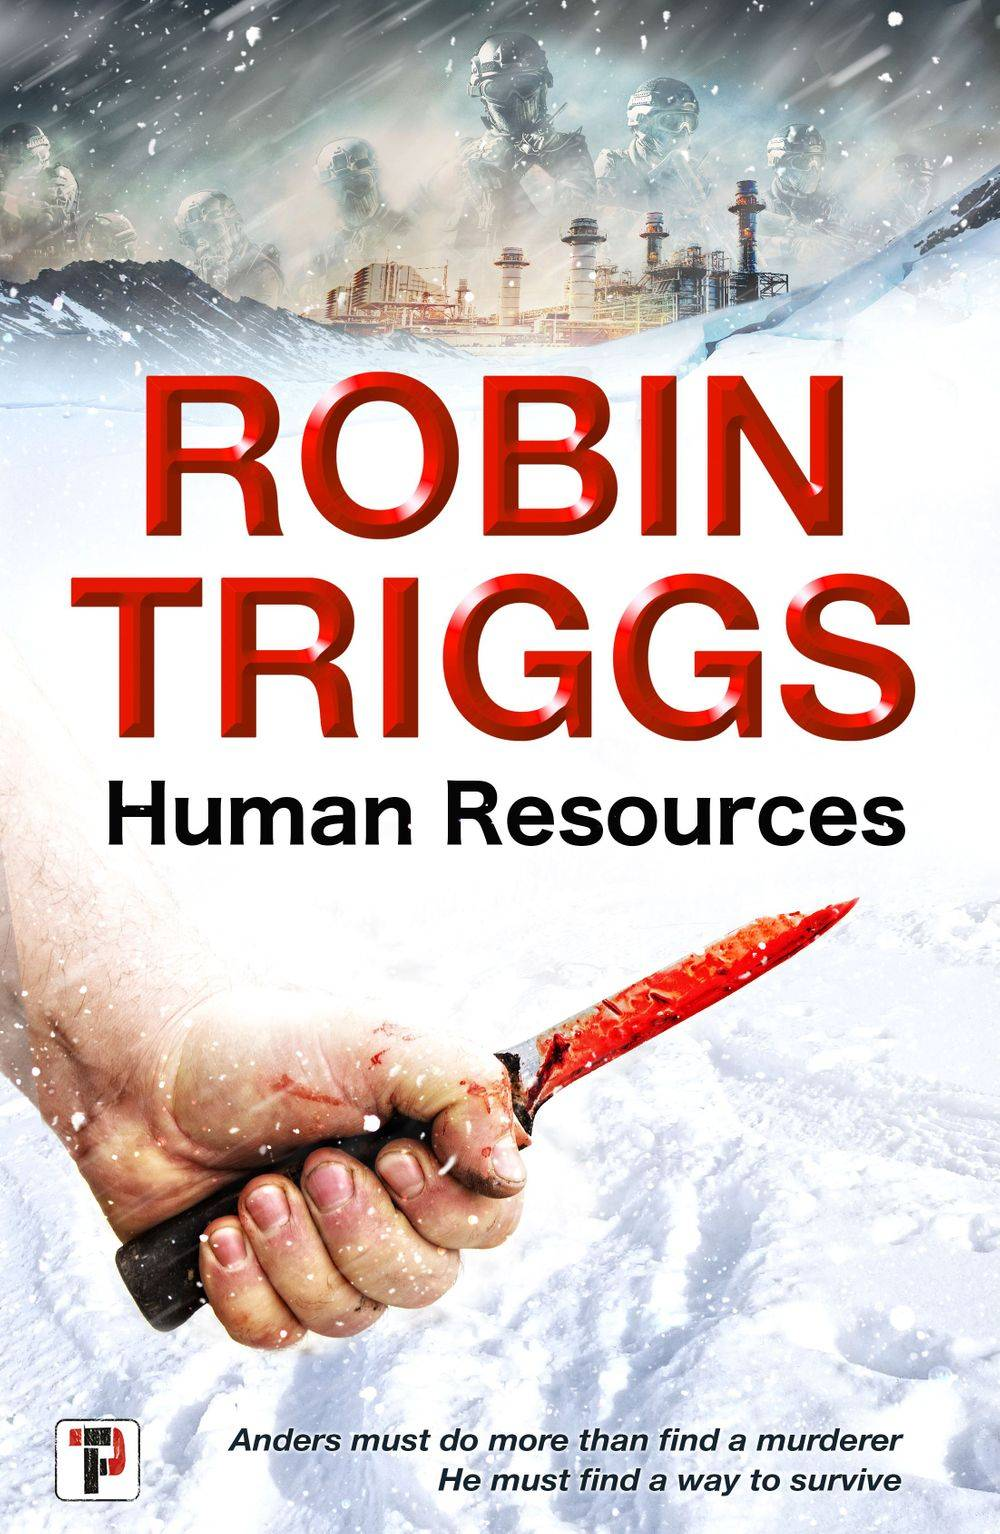 The cover design of Robin Triggs's forthcoming novel 'Human Resources'